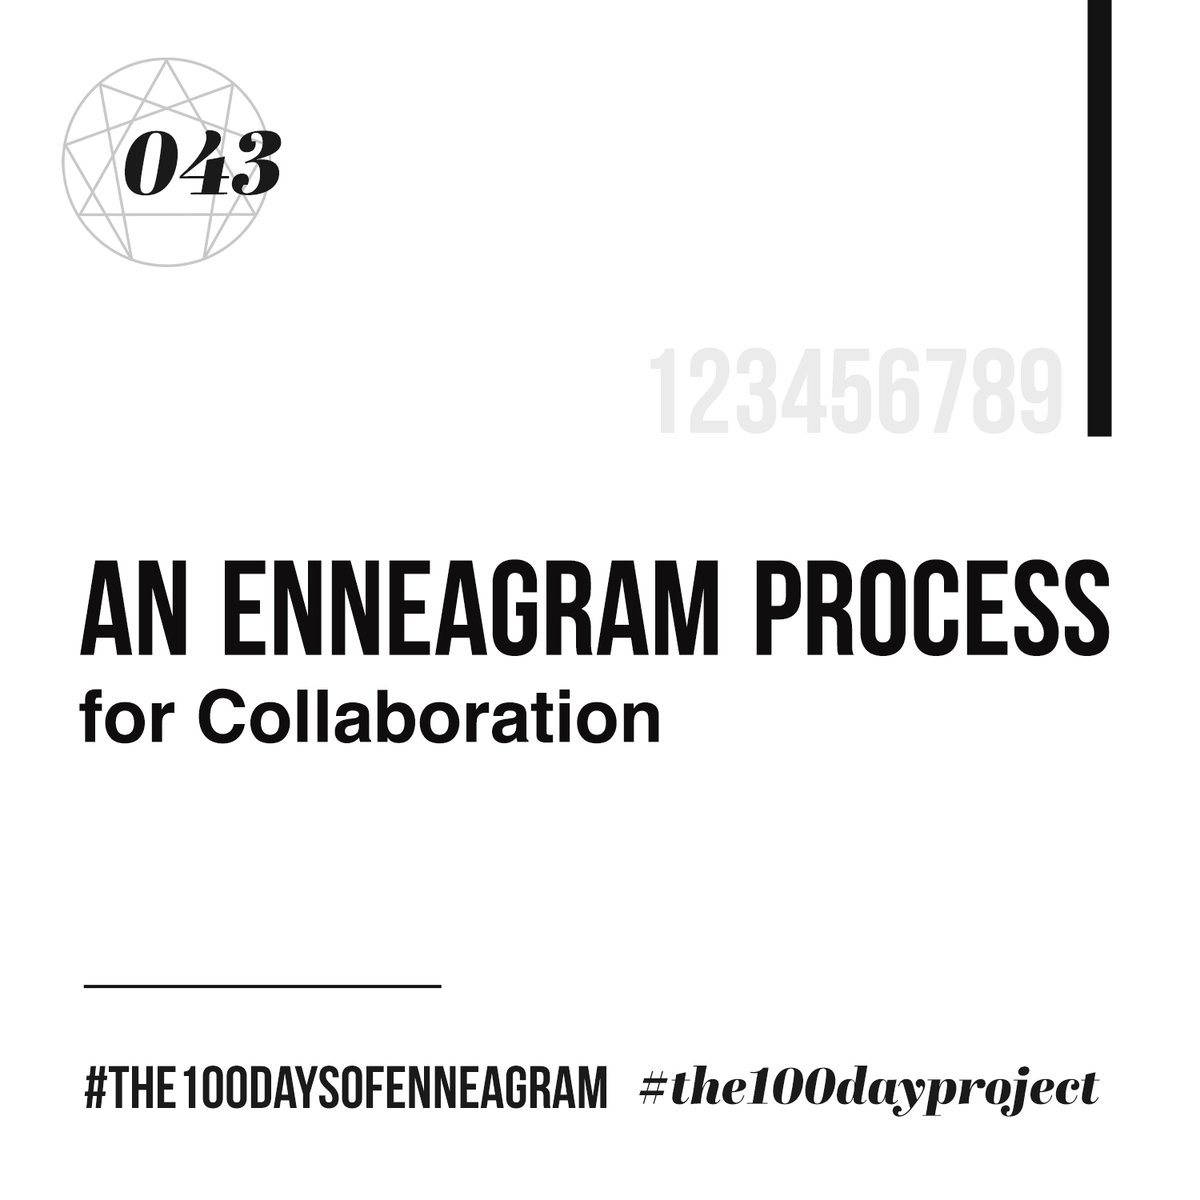 043/100 | An Enneagram Process for Collaboration Listen at https://t.co/MBo795Vt8V   Still a day behind. Working on it.  #the100dayproject #the100daysofEnneagram #enneagram #collaborations #questions #reflection https://t.co/ntwFRgfXlG